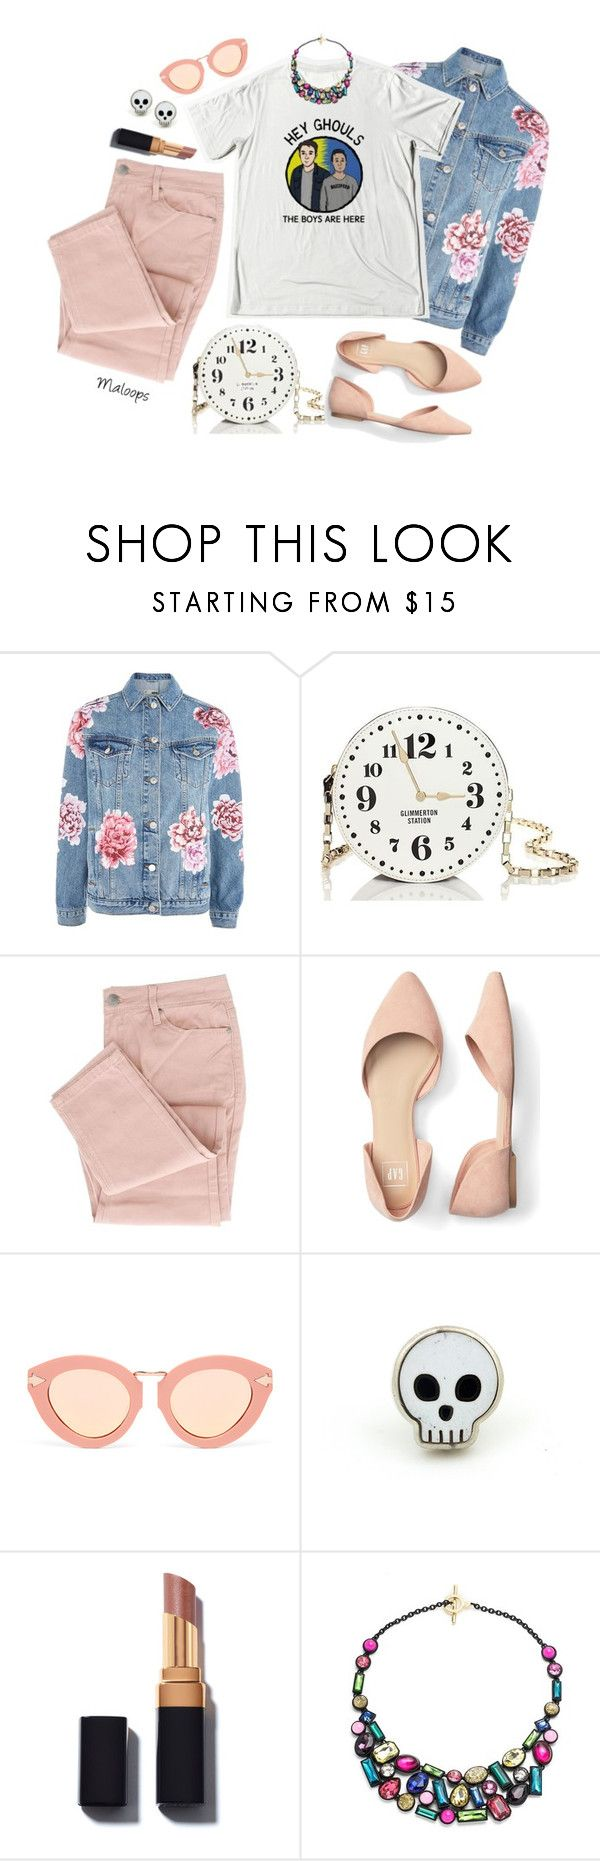 """~Call me, call me any, anytime~"" by maloops ❤ liked on Polyvore featuring Topshop, Kate Spade, Karen Walker, Trina Turk, StreetStyle, quirky, girlpower and minibags"